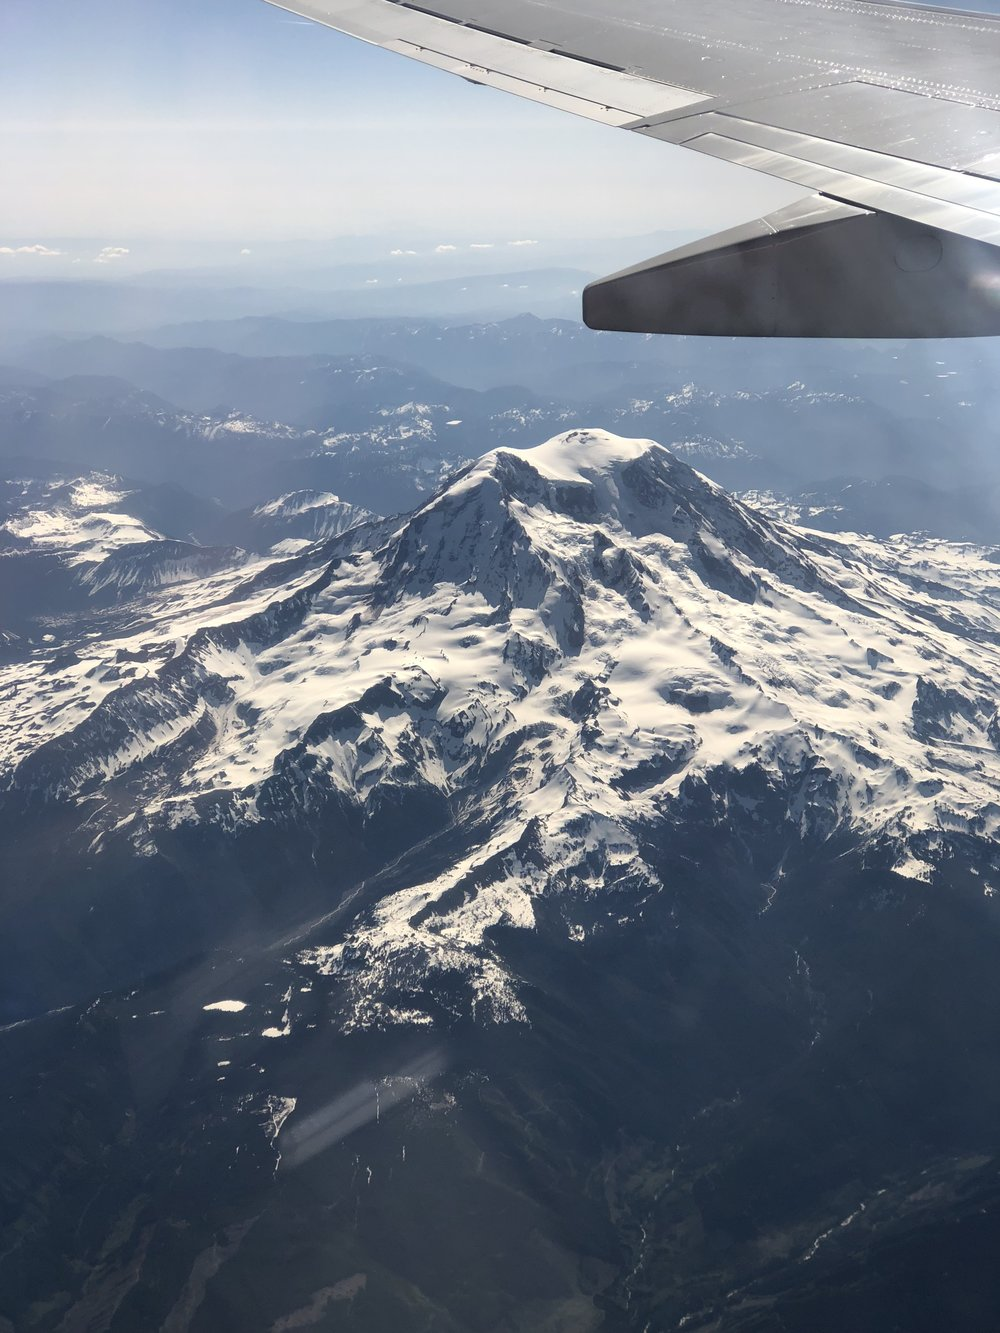 Rainier From above (Taken from the plane).